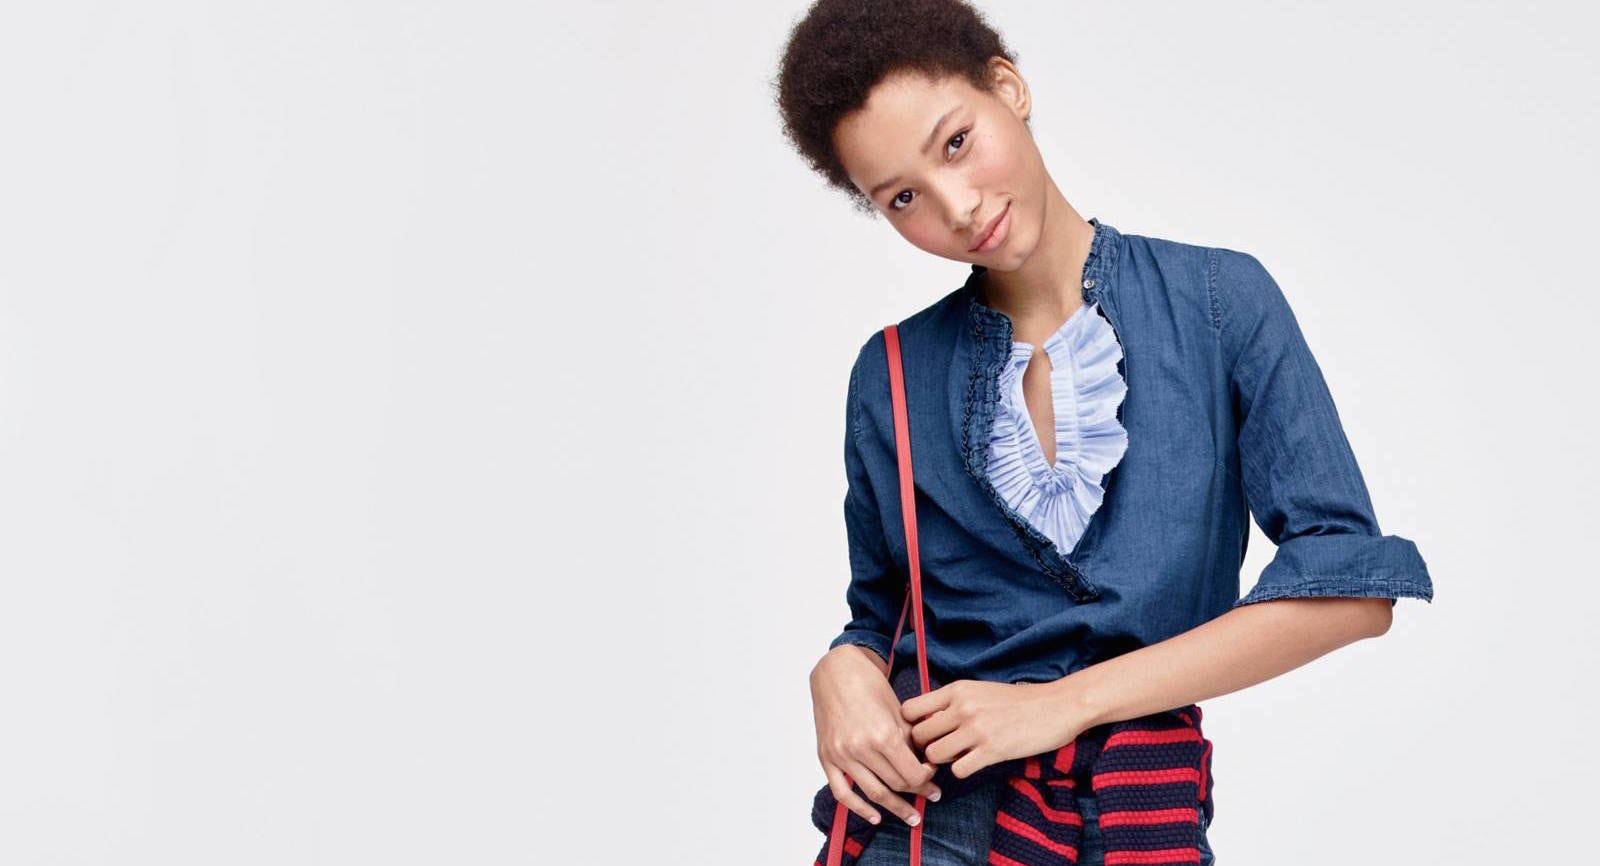 j crew company analysis J crew has been floundering, but its sister brand, madewell, is thriving here's why.